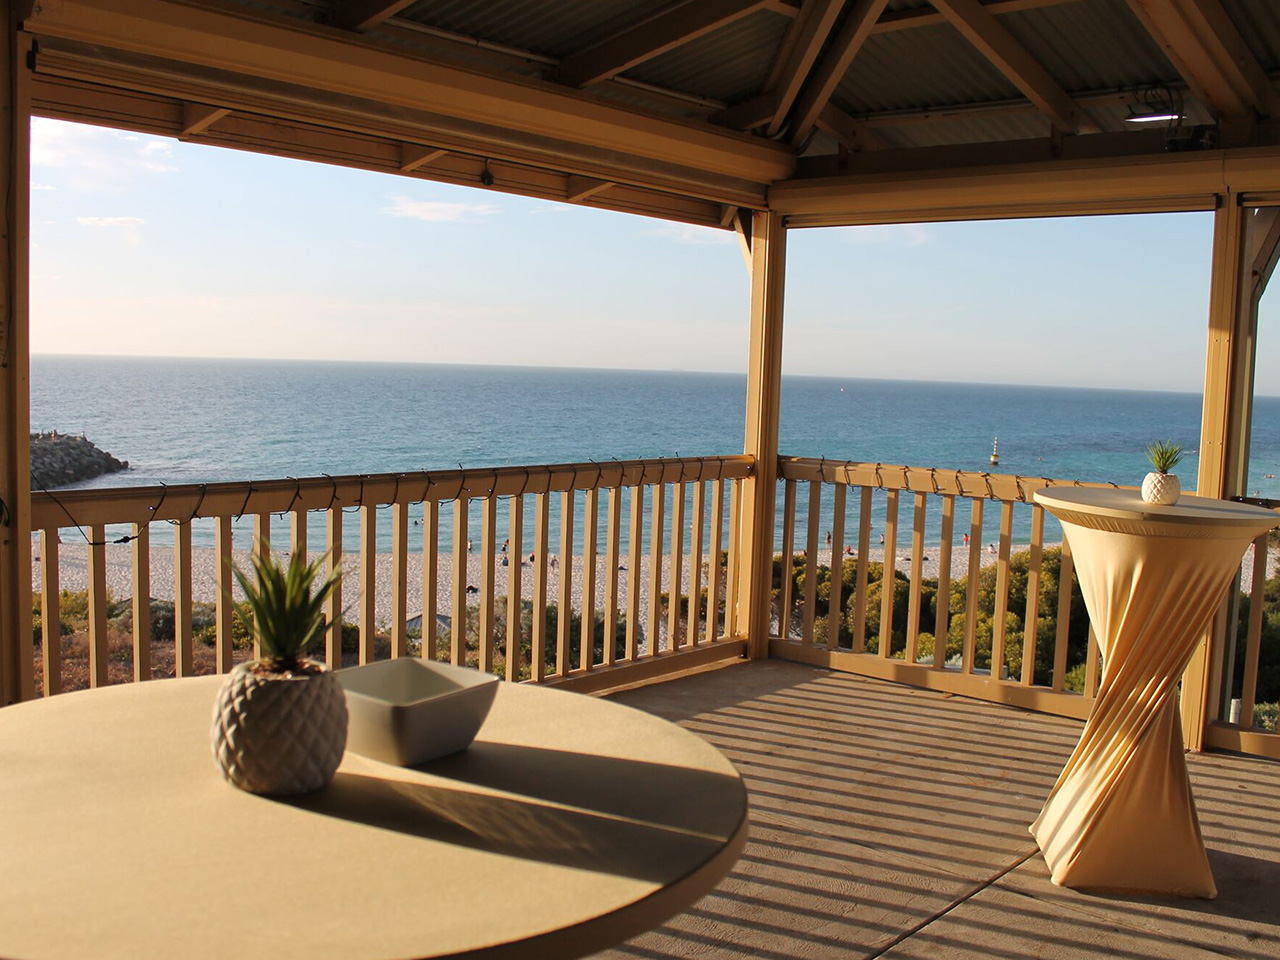 Corporate Events Perth Venues With Balcony And Ocean View